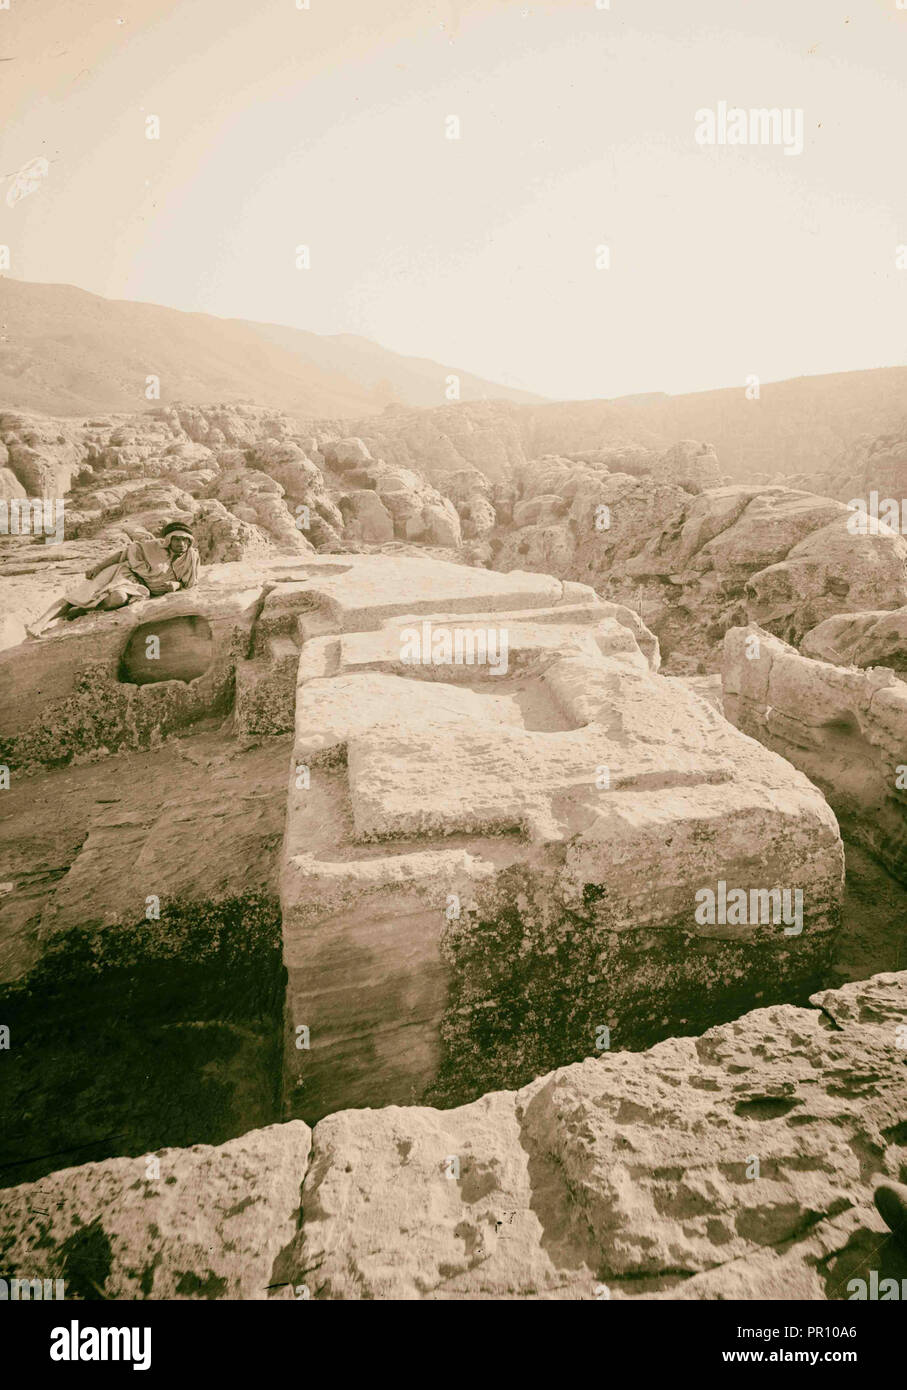 Petra in Transjordan. Tops of altars for sacrificing. 1900, Jordan, Petra, Extinct city - Stock Image